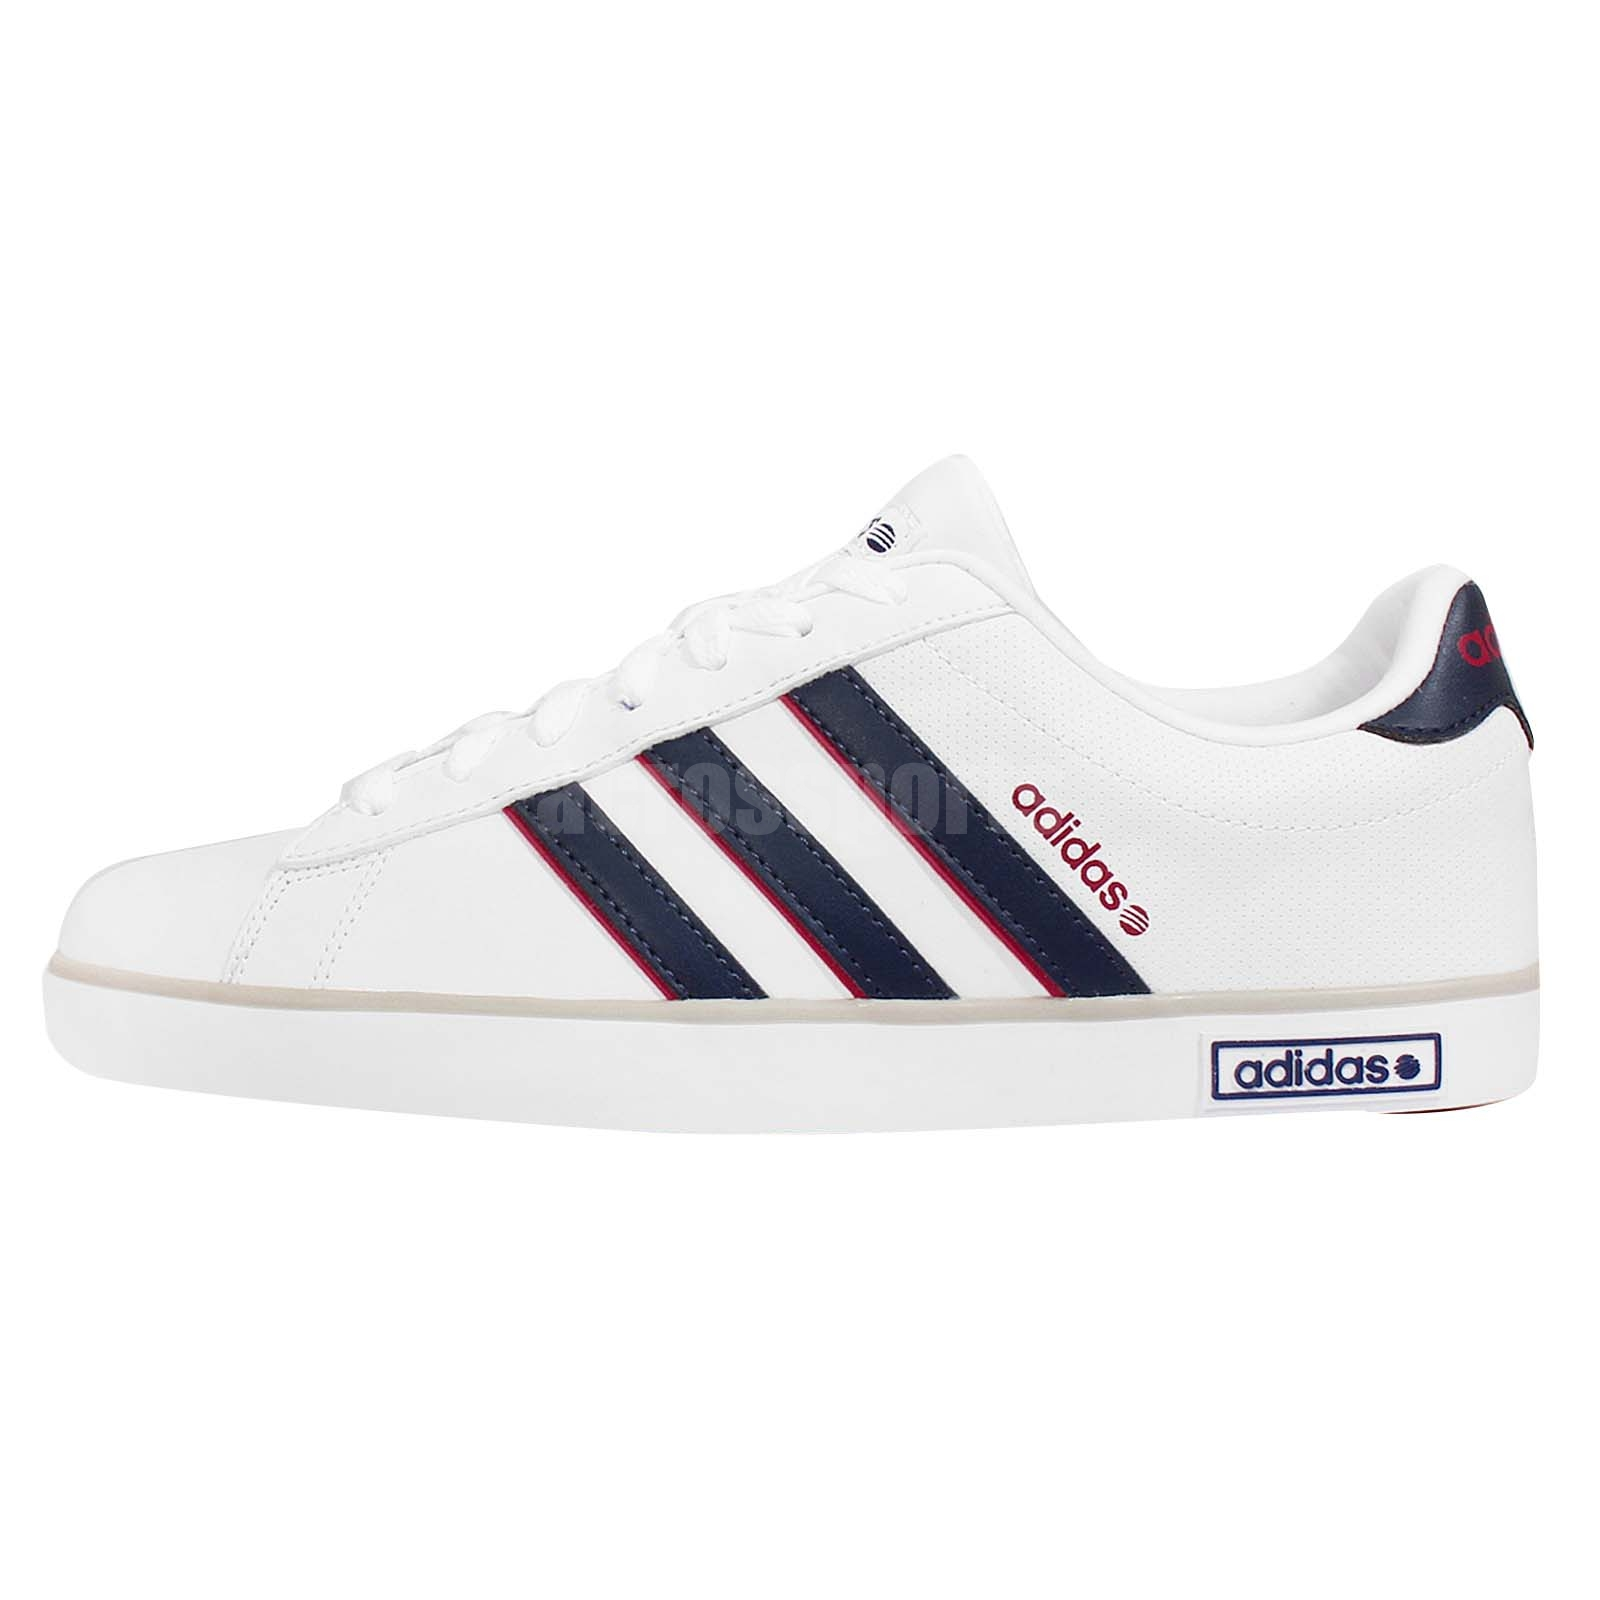 adidas neo label derby vulc white navy red mens casual. Black Bedroom Furniture Sets. Home Design Ideas